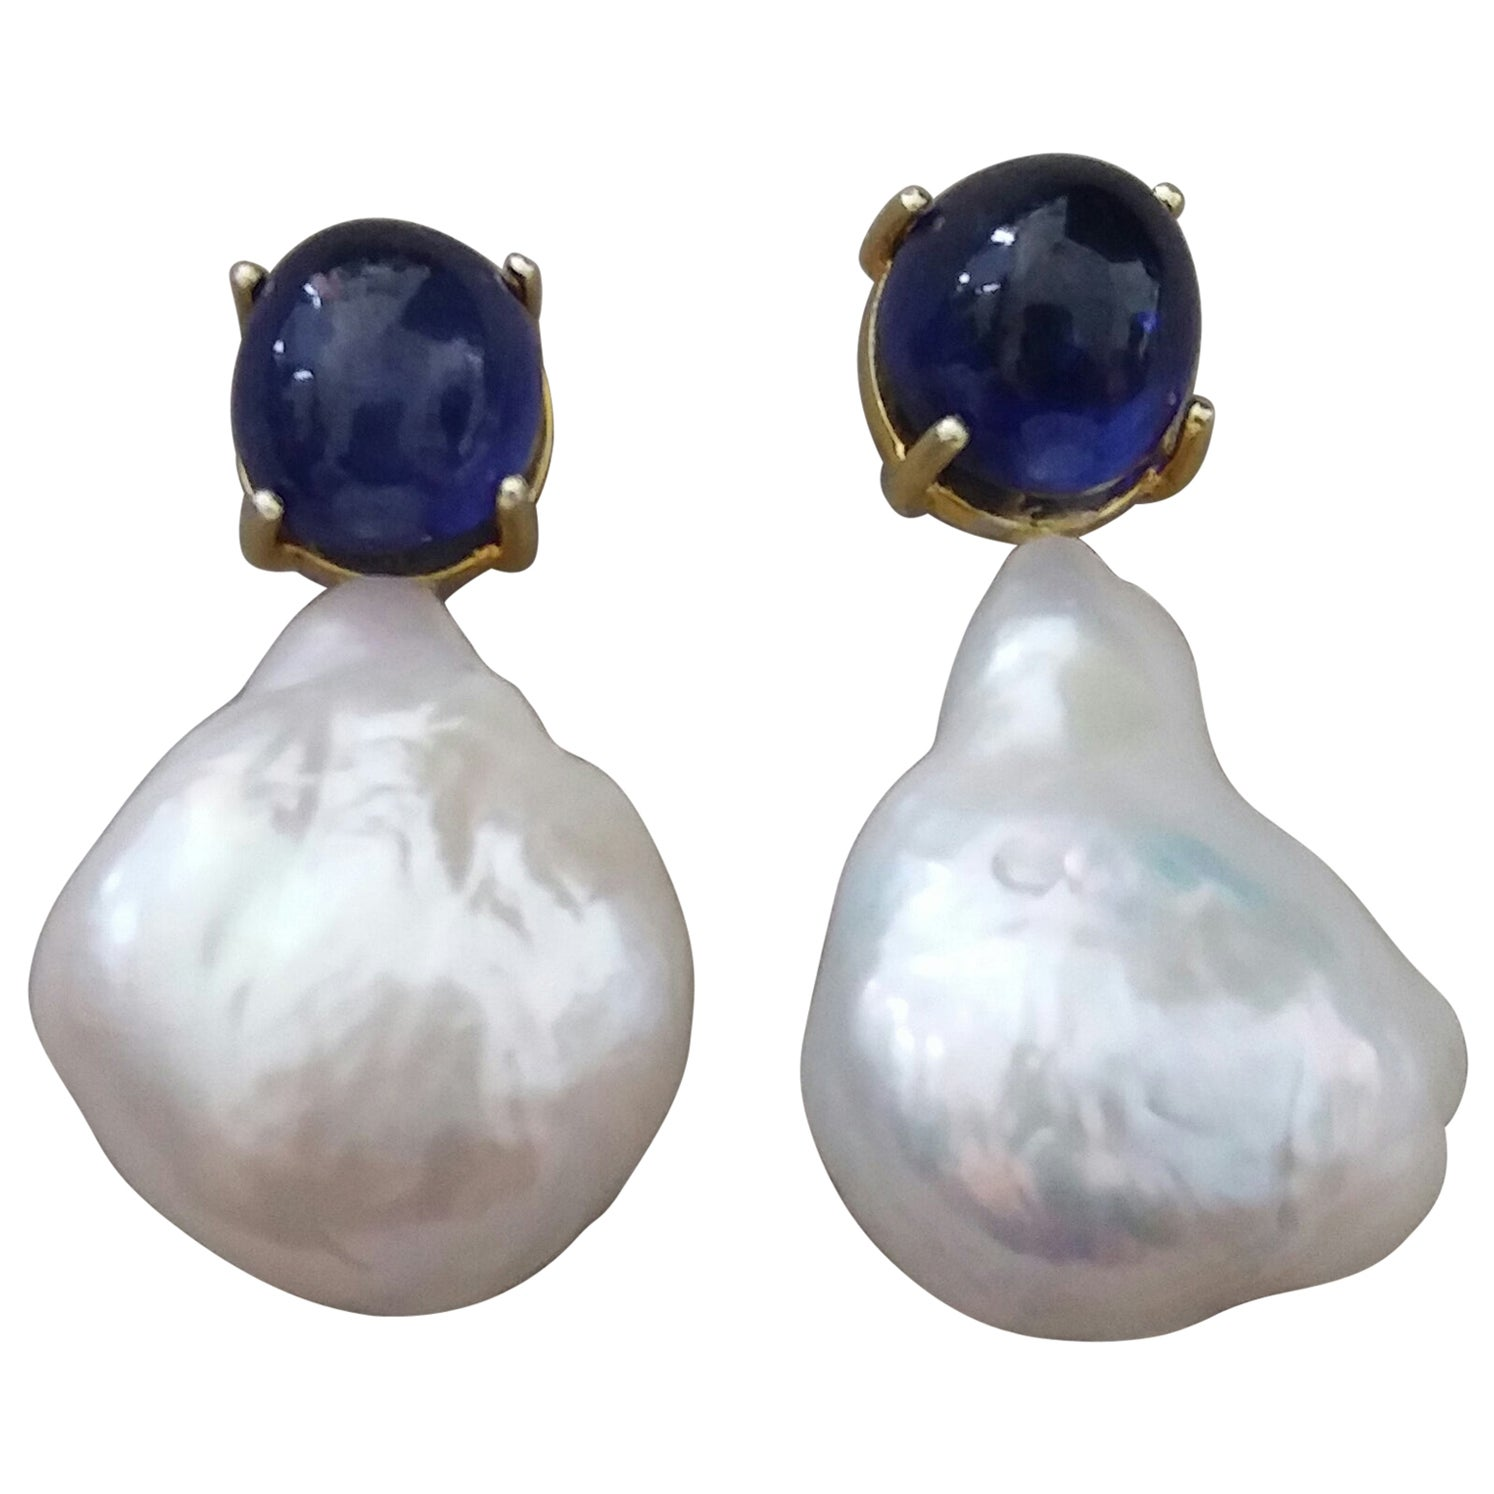 Big Size Pear Baroque Pearls Oval Blue Sapphires Cabochons Yellow Gold Earrings